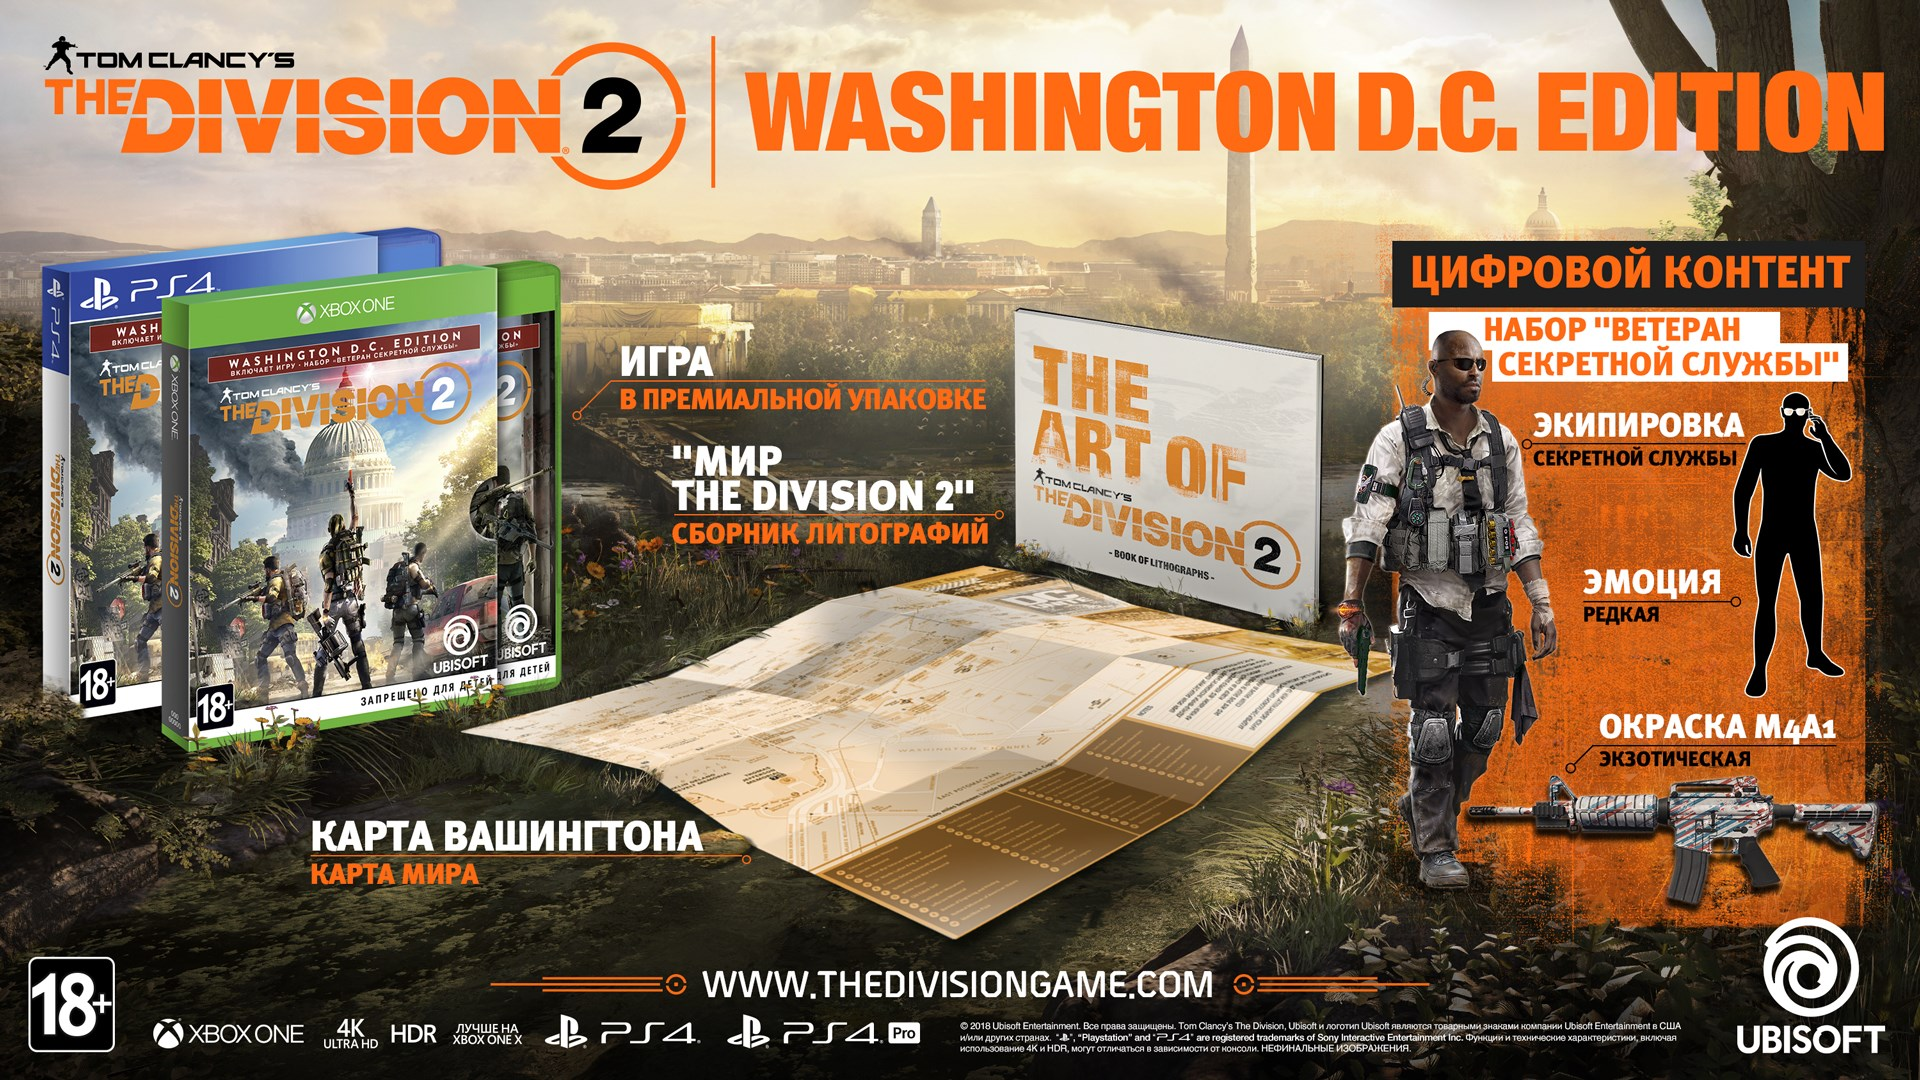 Tom Clancy's The Division 2 Washington, D.C. Edition